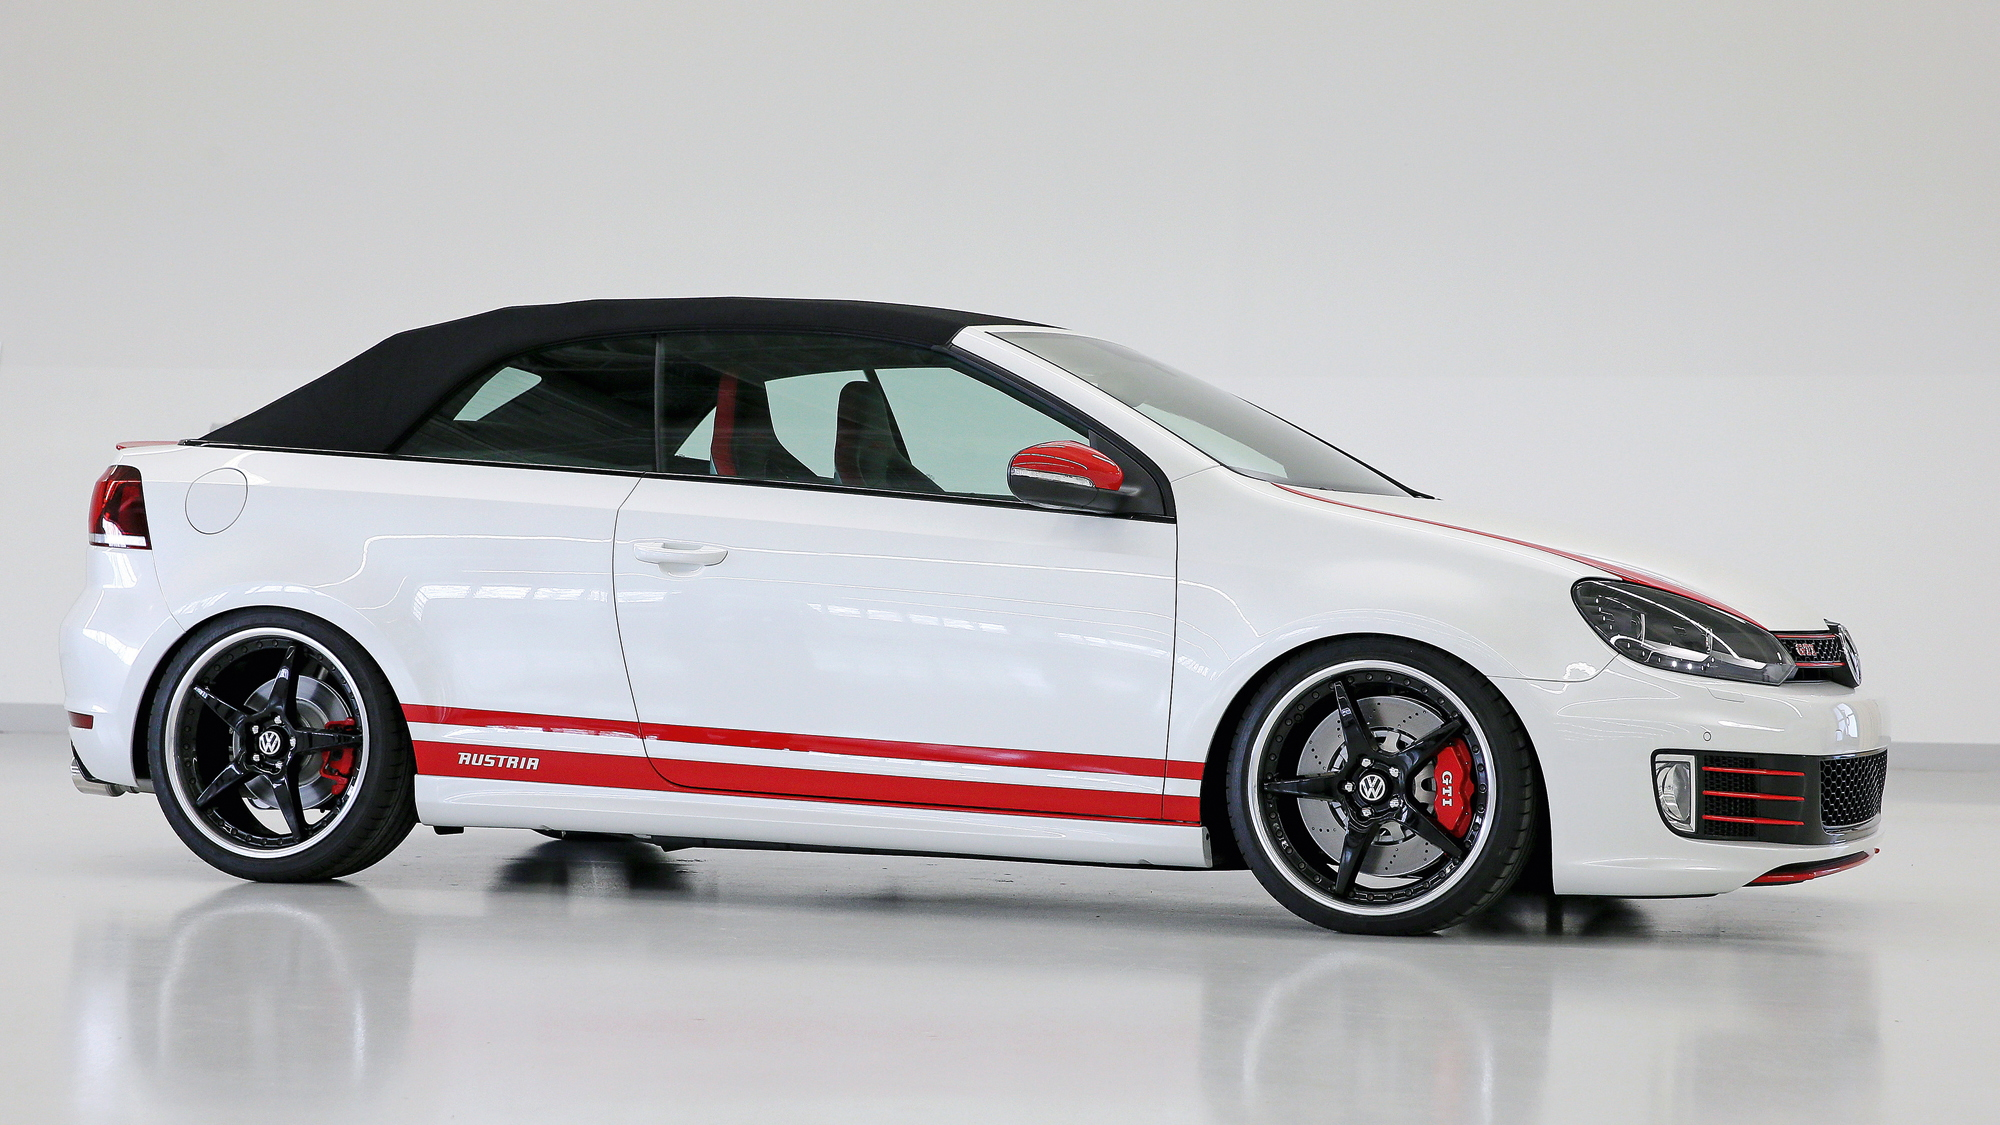 Apprentice-Built Wörthersee VW Golf GTI Cabrio